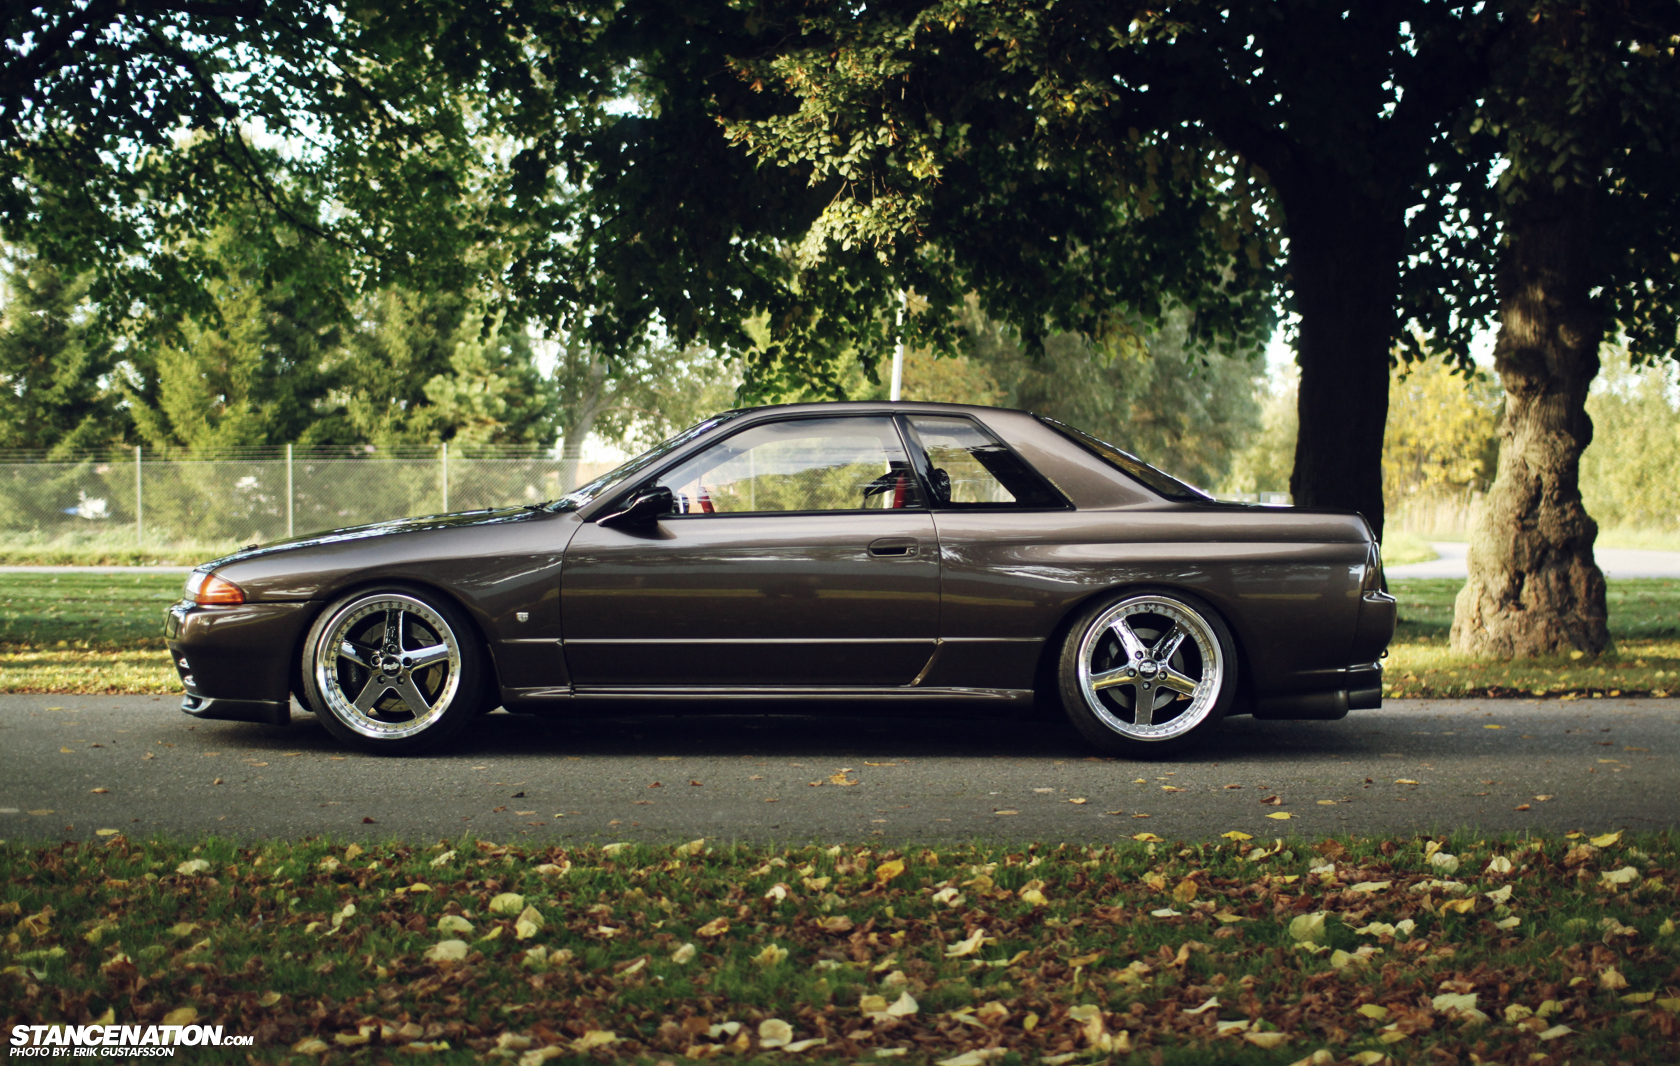 Well Equip'd and Greddy // Fredrick's 463WHP R32 GTR ...